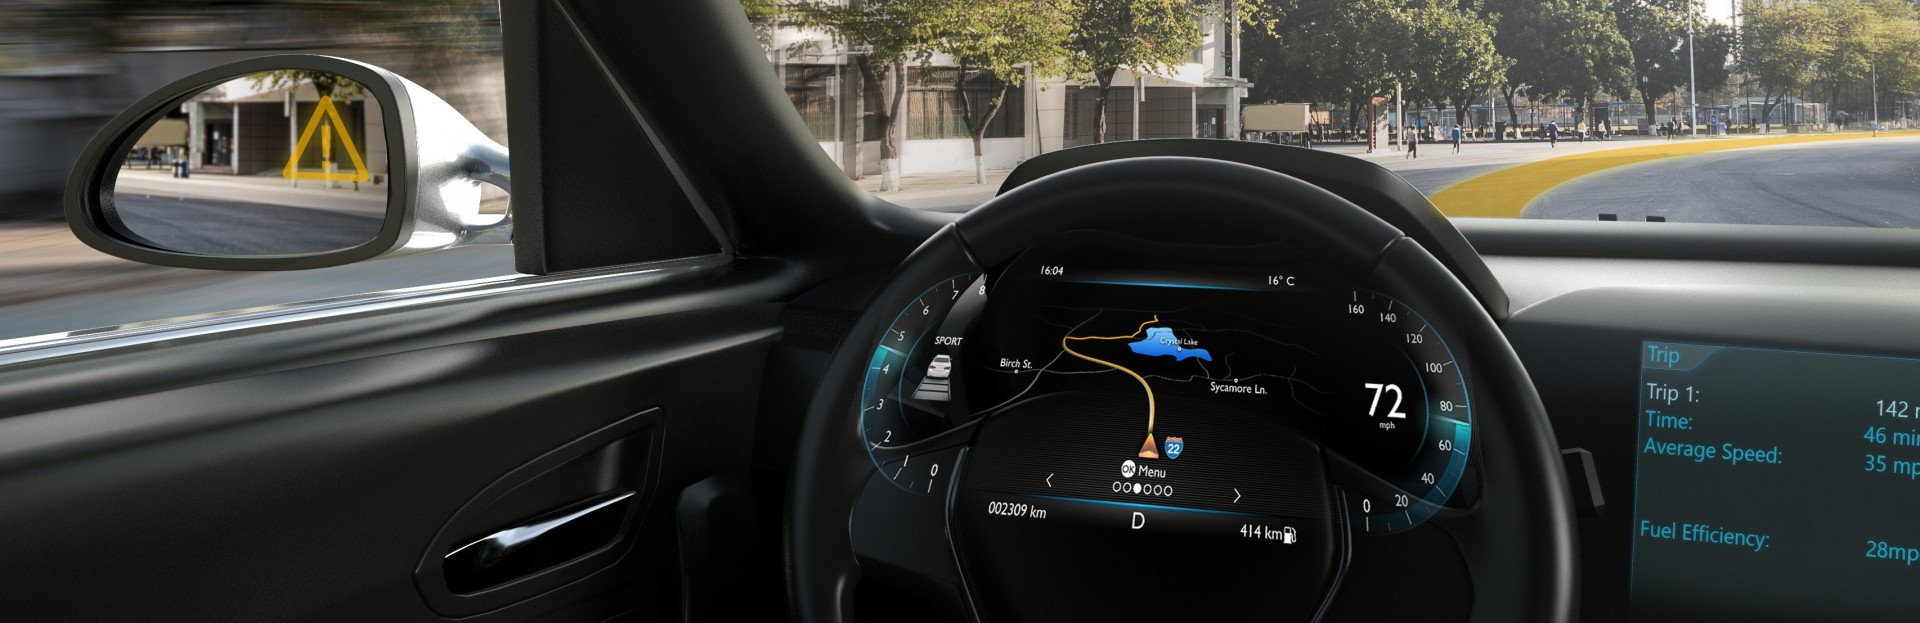 Visteon's advanced connected cockpit